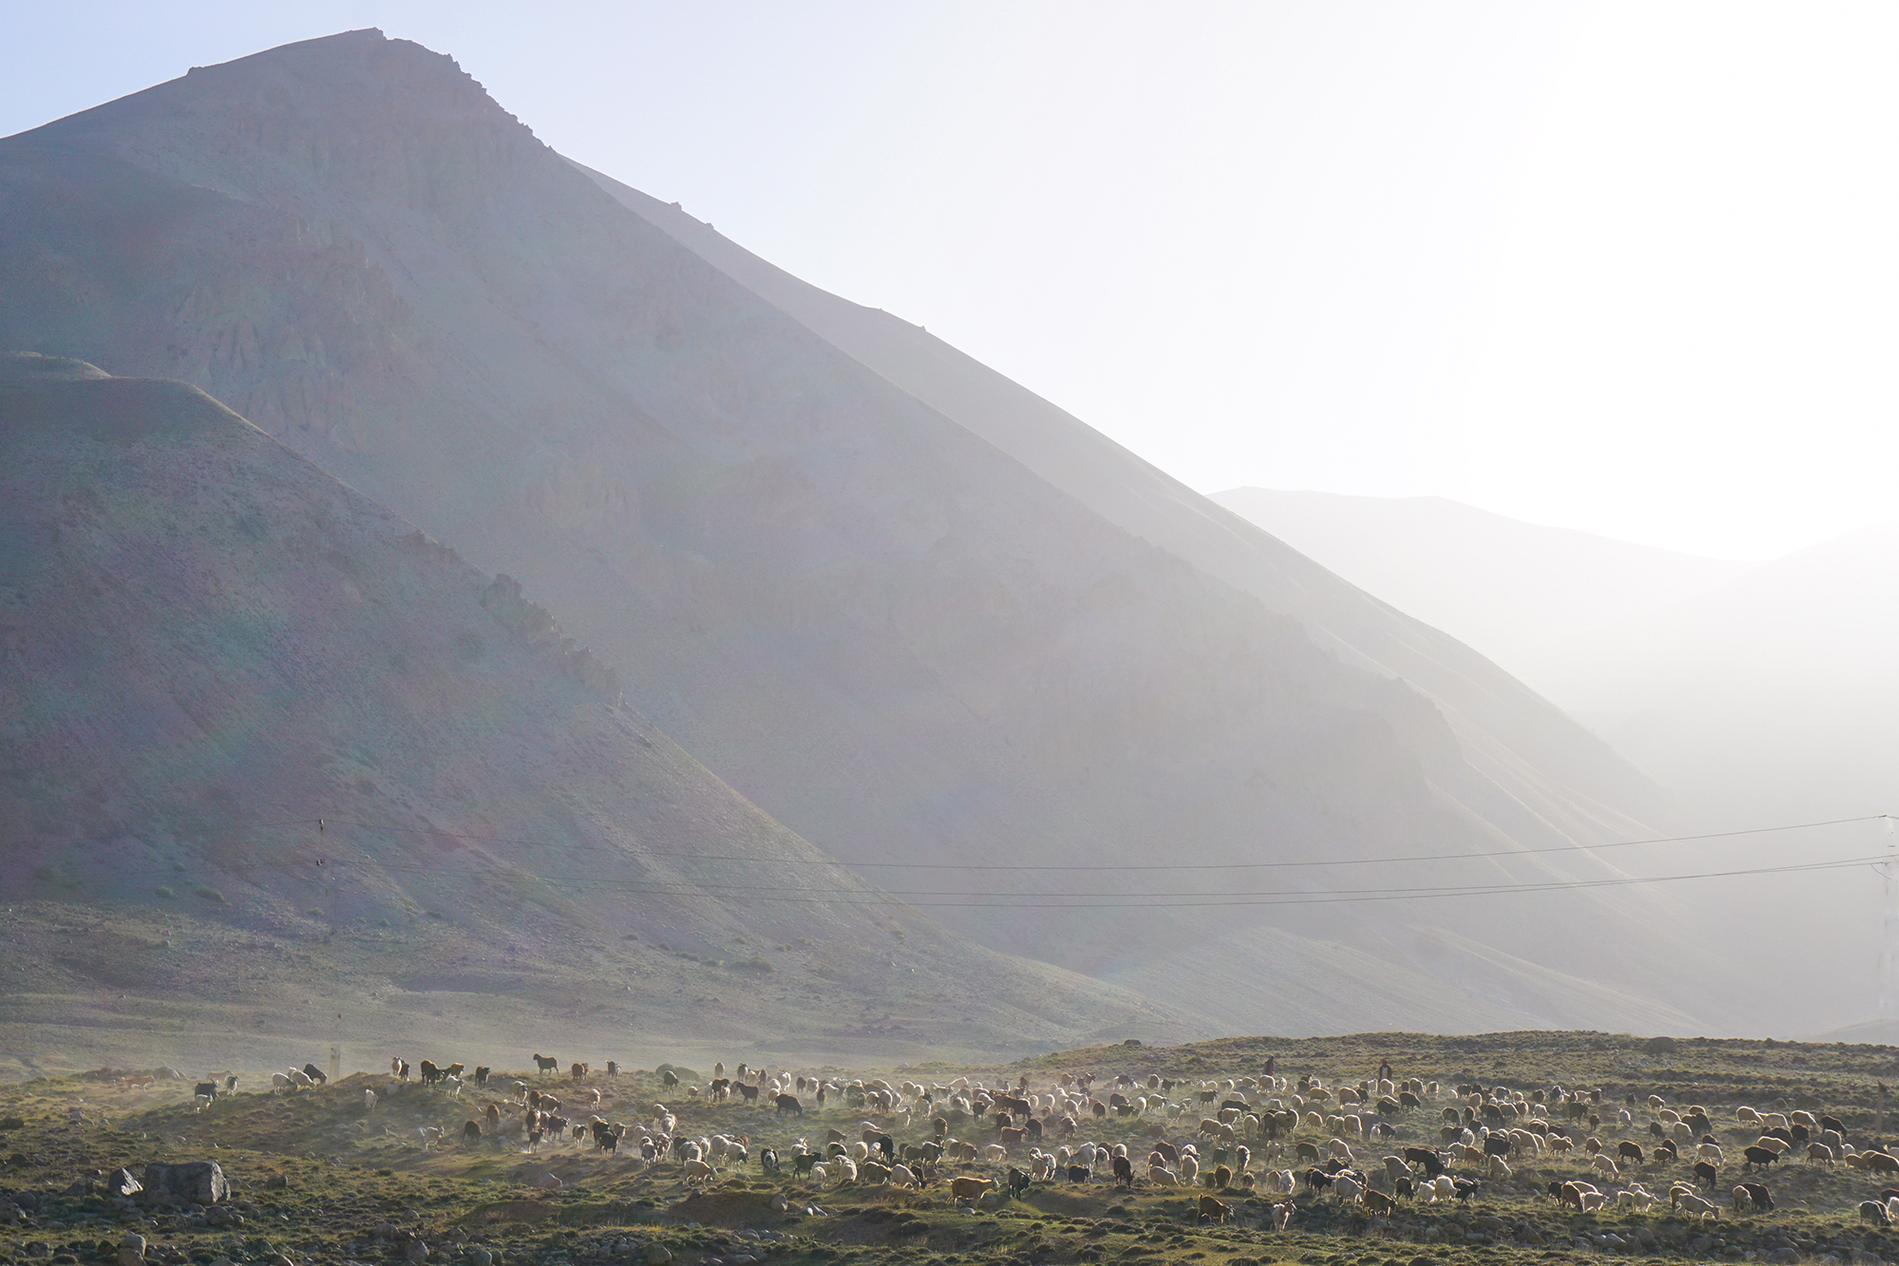 Morning light on shepherds and their goats.